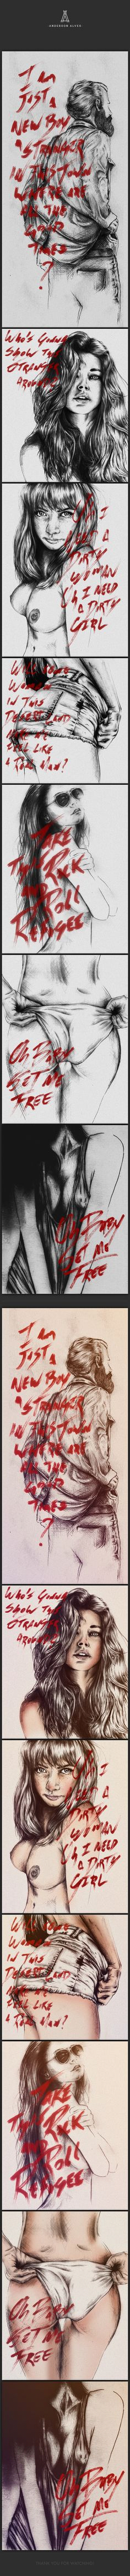 Young Lust by Anderson Alves, via Behance